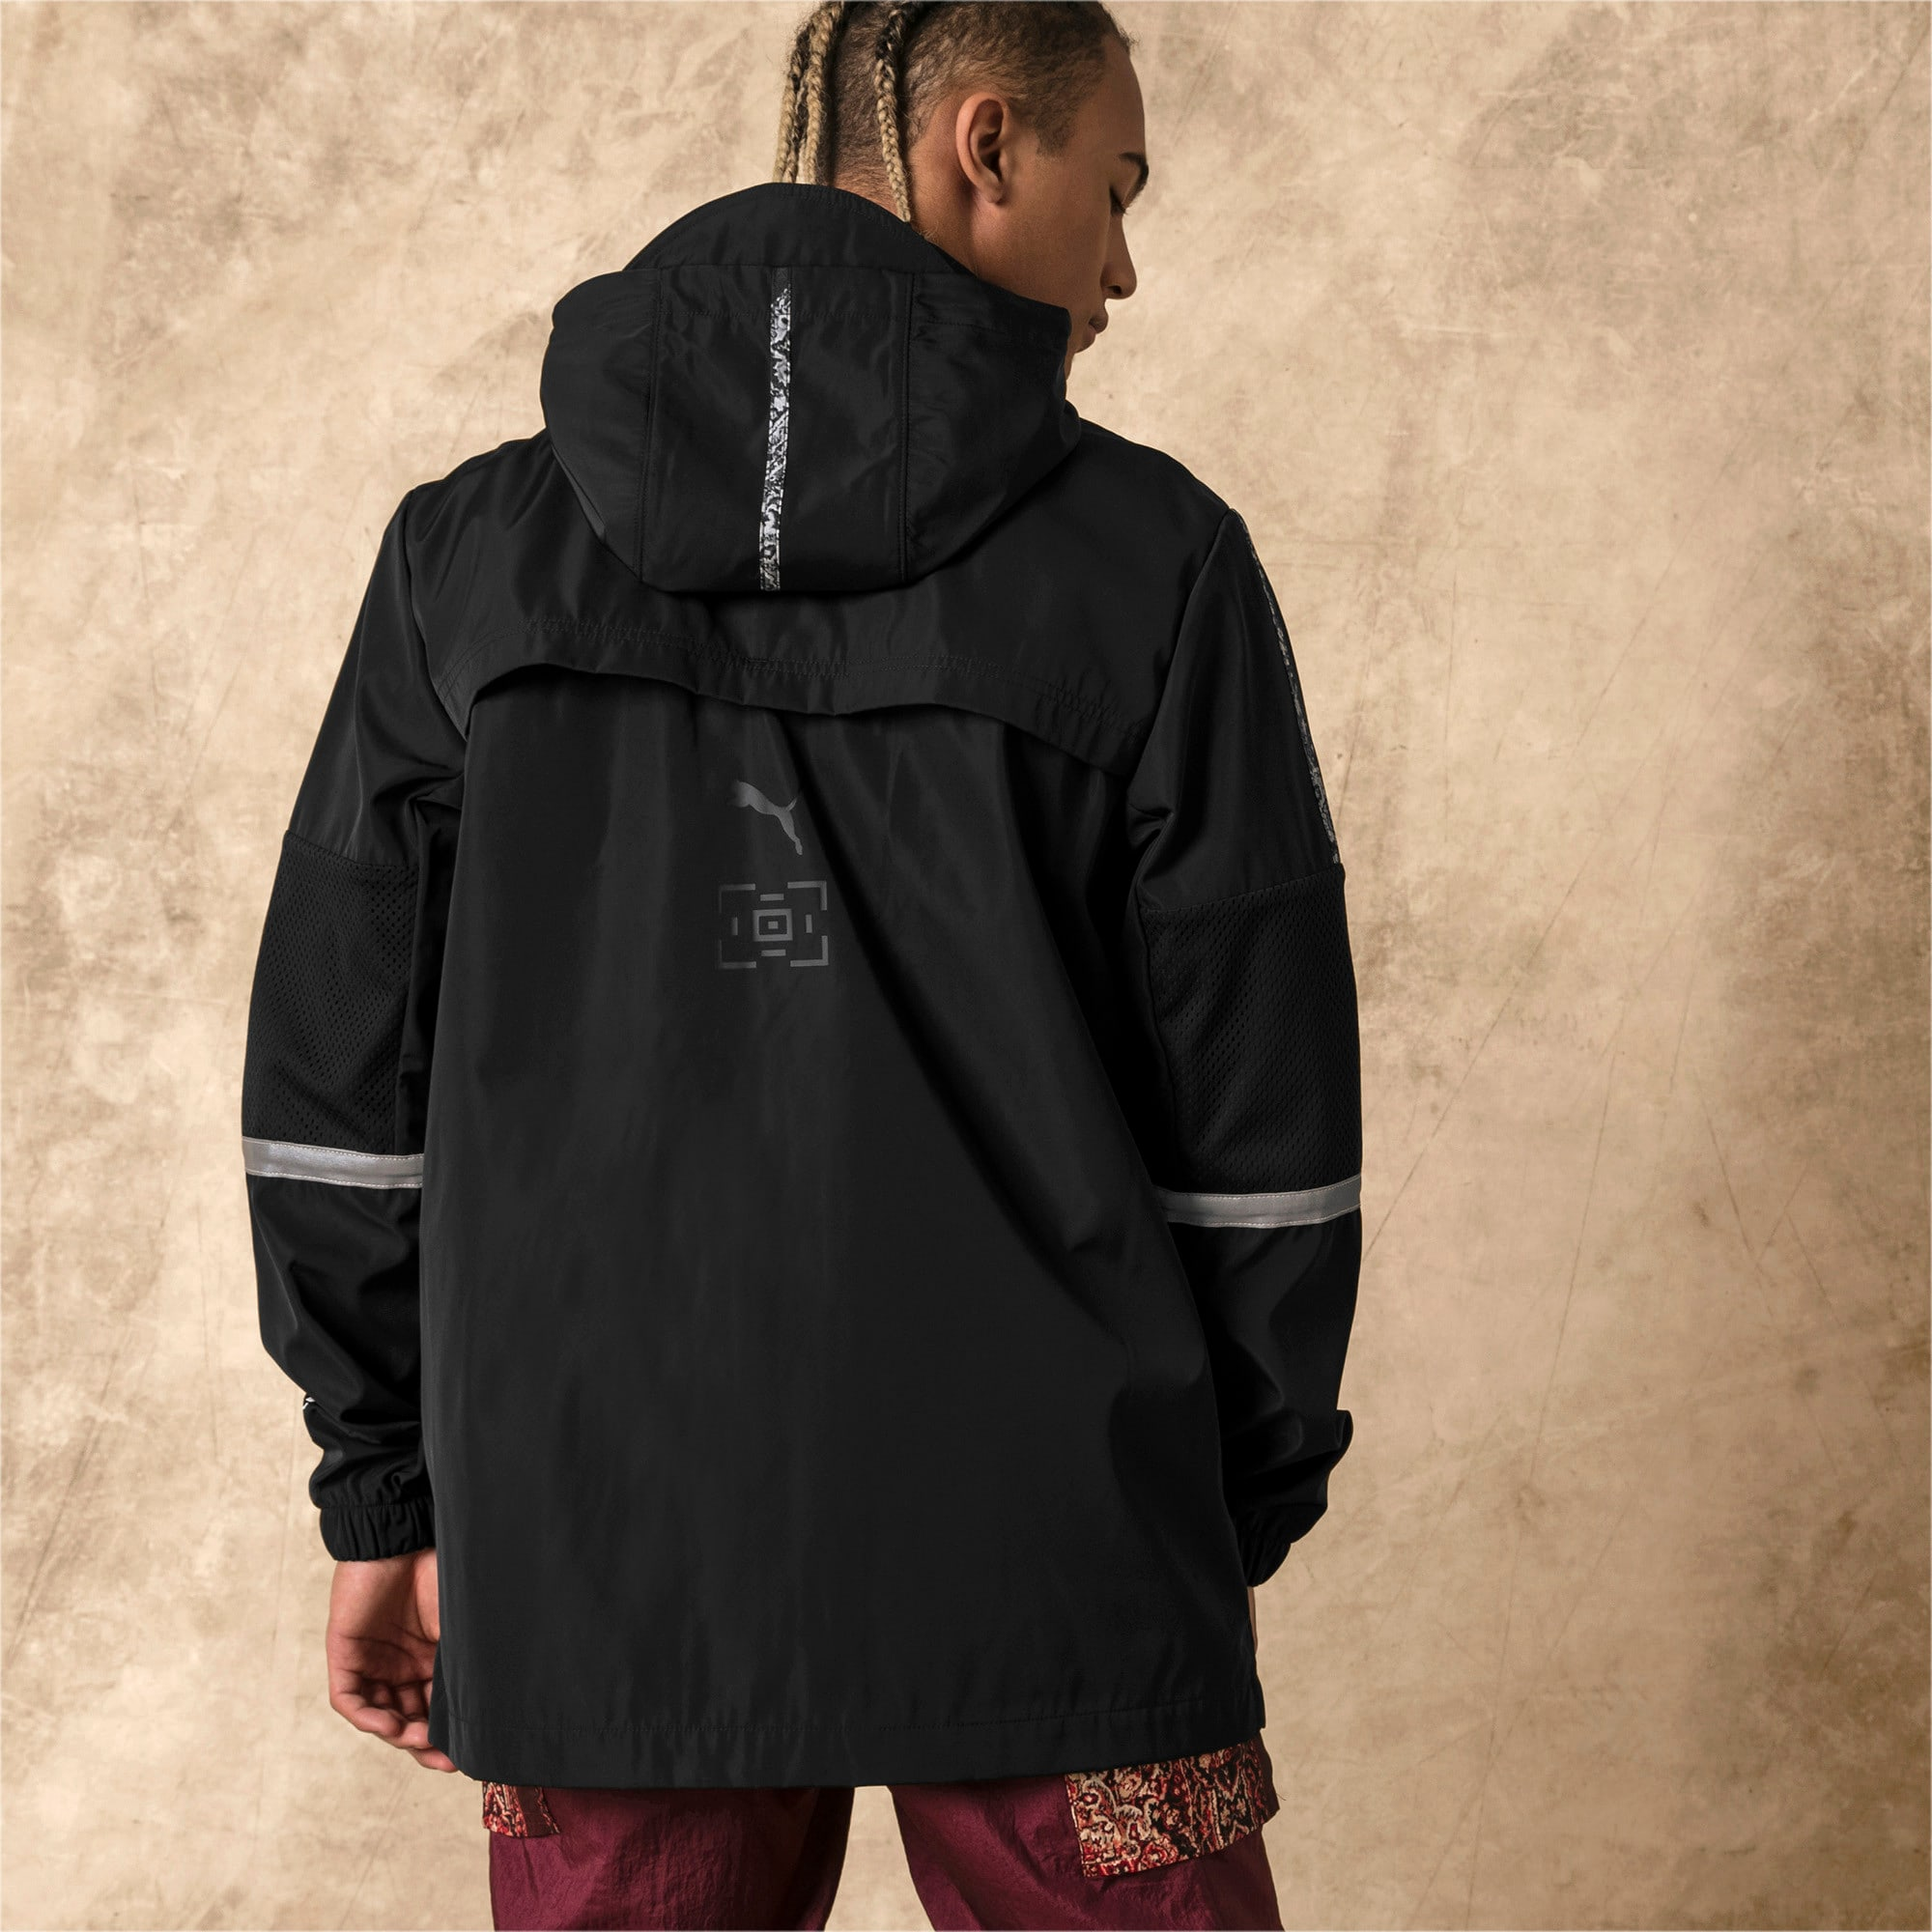 Thumbnail 3 of PUMA x LES BENJAMINS Men's Windbreaker, Puma Black, medium